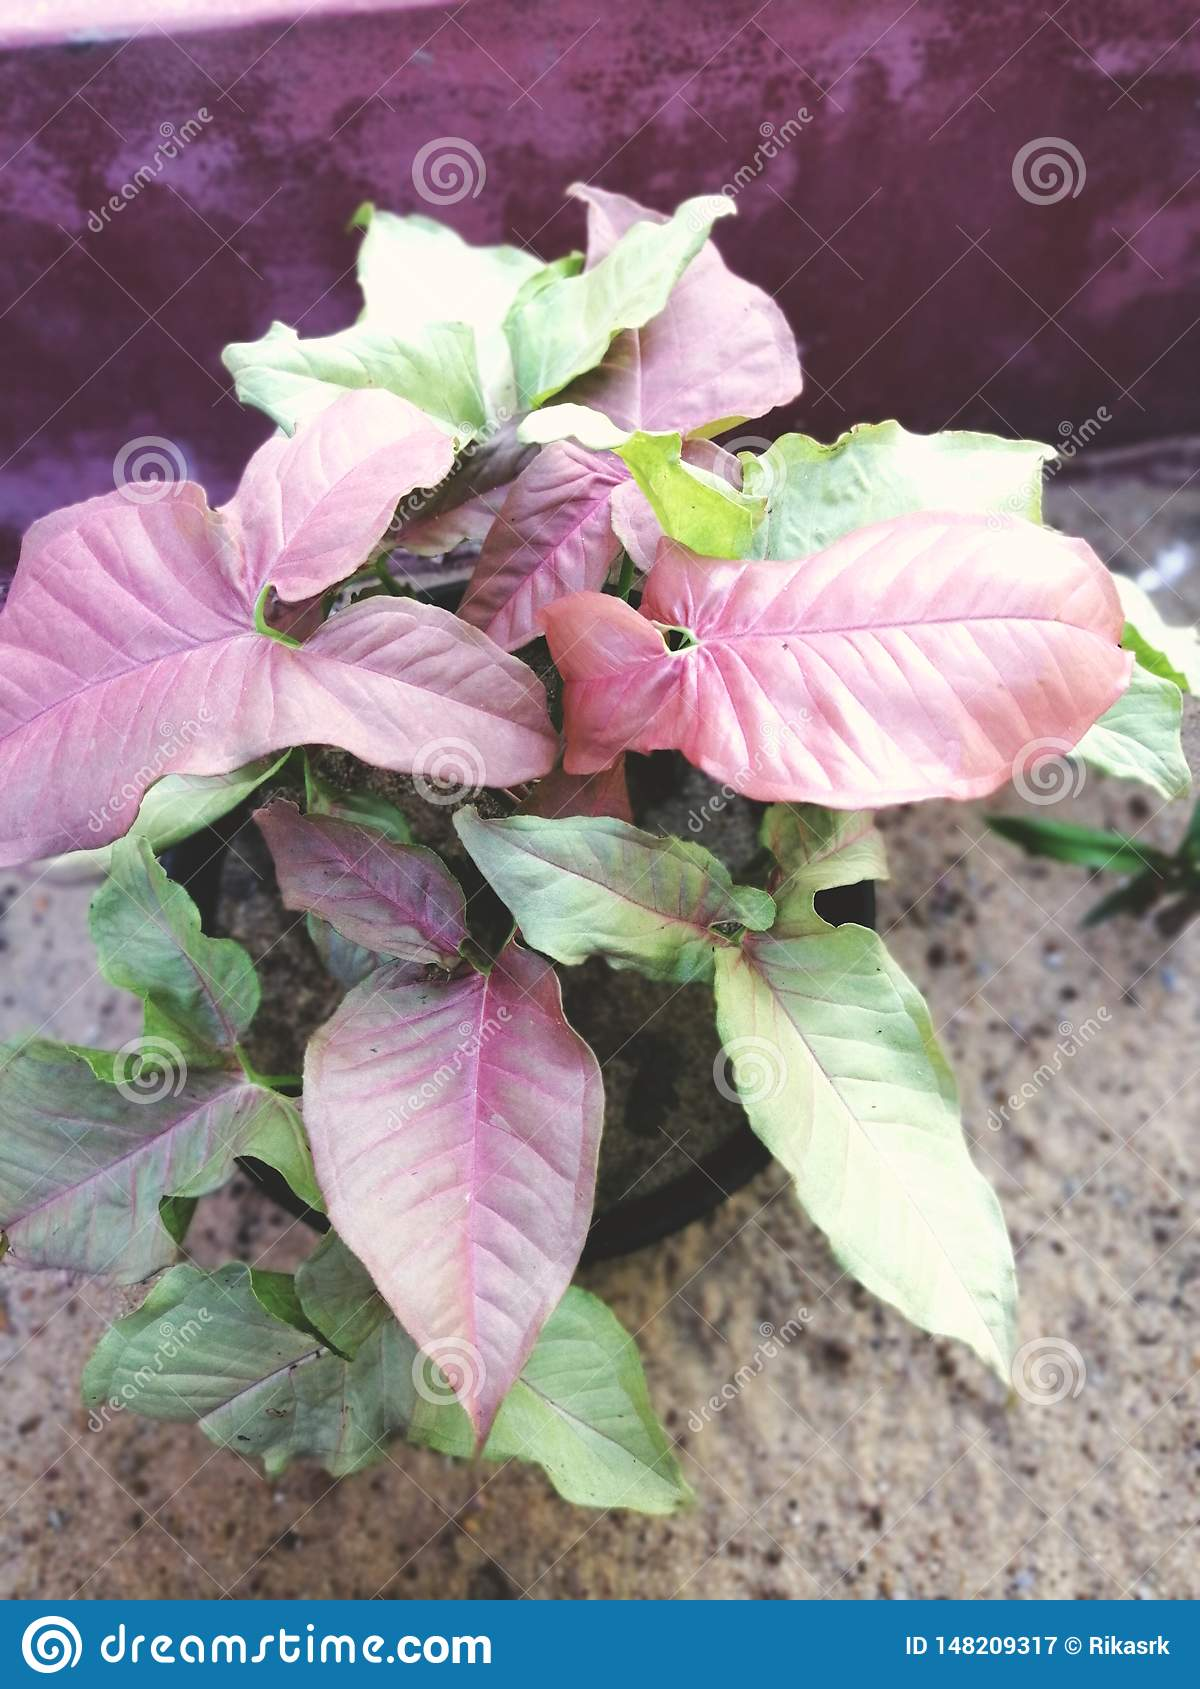 Different type of croton plant